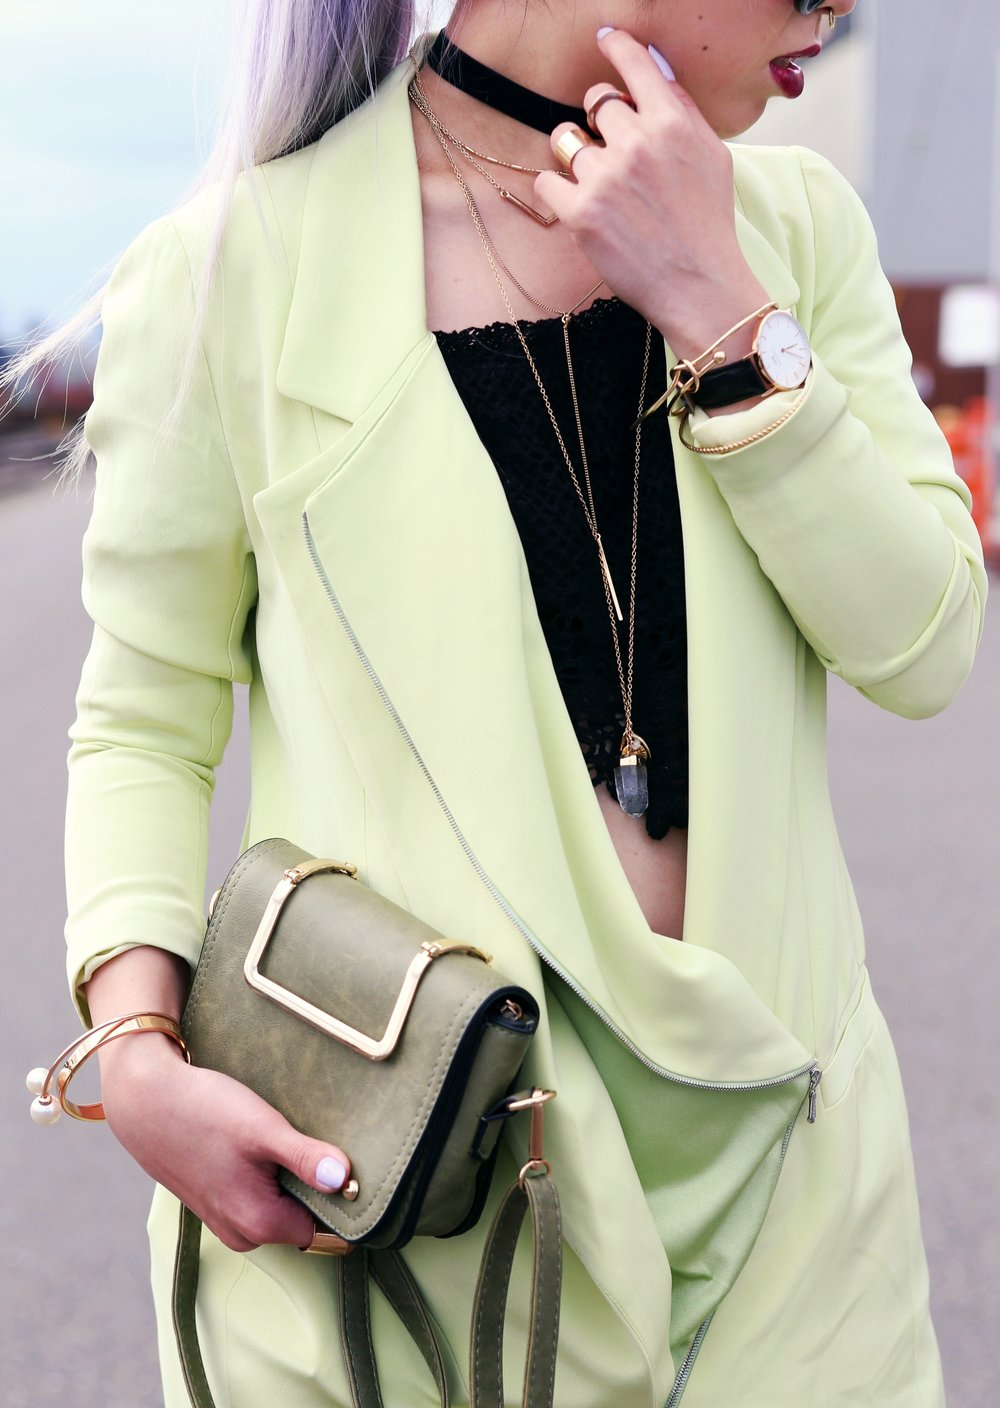 YunaYang Lime Green Jacket Dress_Charlotte Russe Off the shoulder Lace Cropped top_Nastygal Velvet Choker_Emmy Trinh Wish Necklace_Daniel Wellington Watch_Romwe Khaki Mini bag_Forever 21 Layered NecklaceLove Closet_Seattle Fashion Blogger_Japanese Fashion_Mermaid Hair_Lavender Hair